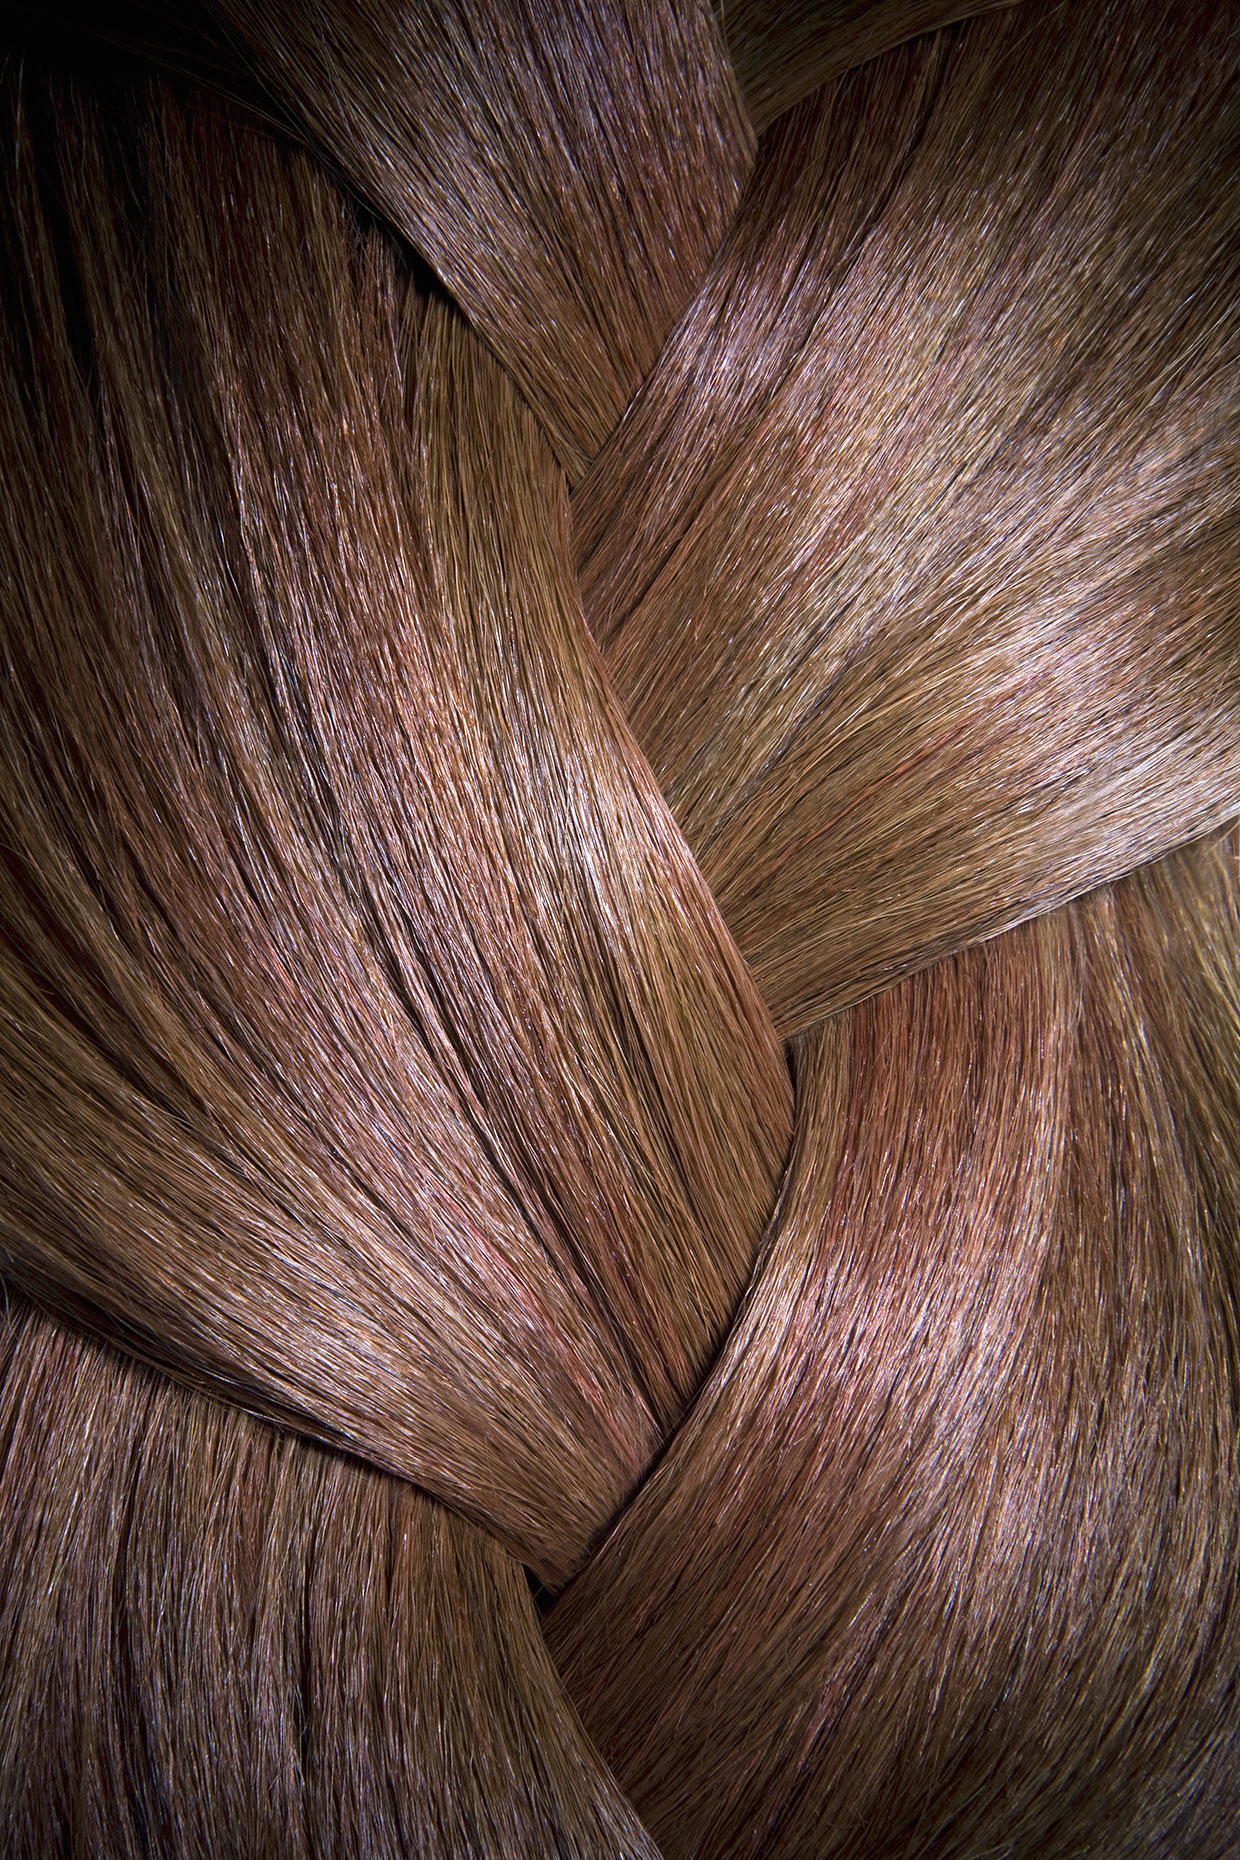 Close up section of shiny braided red hair.